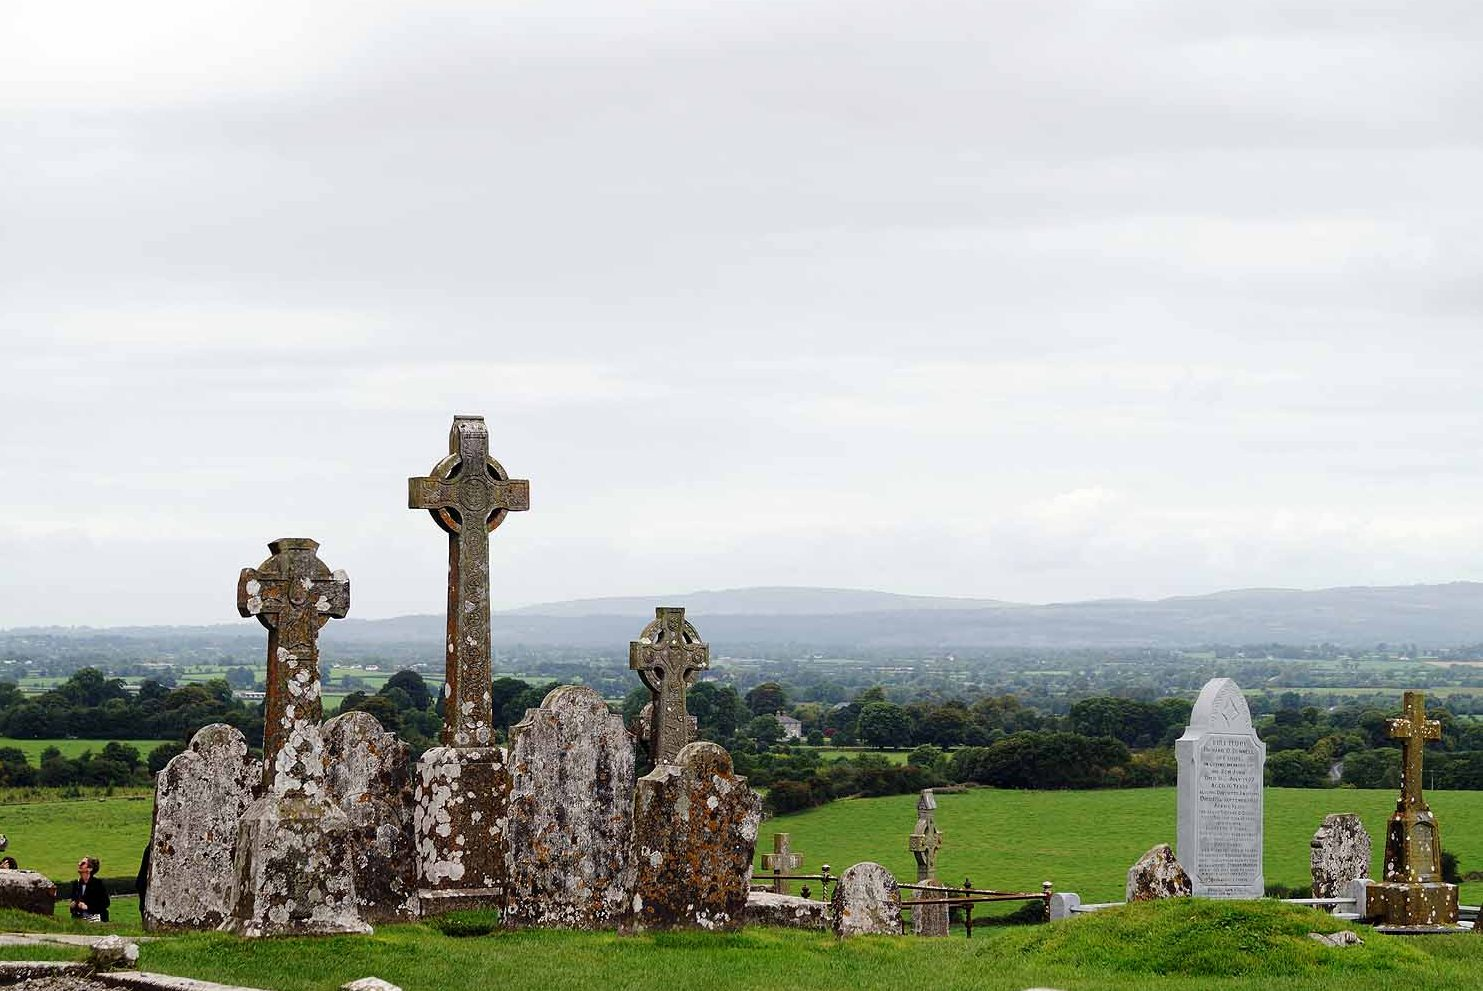 Friedhof am Rock of Cashel